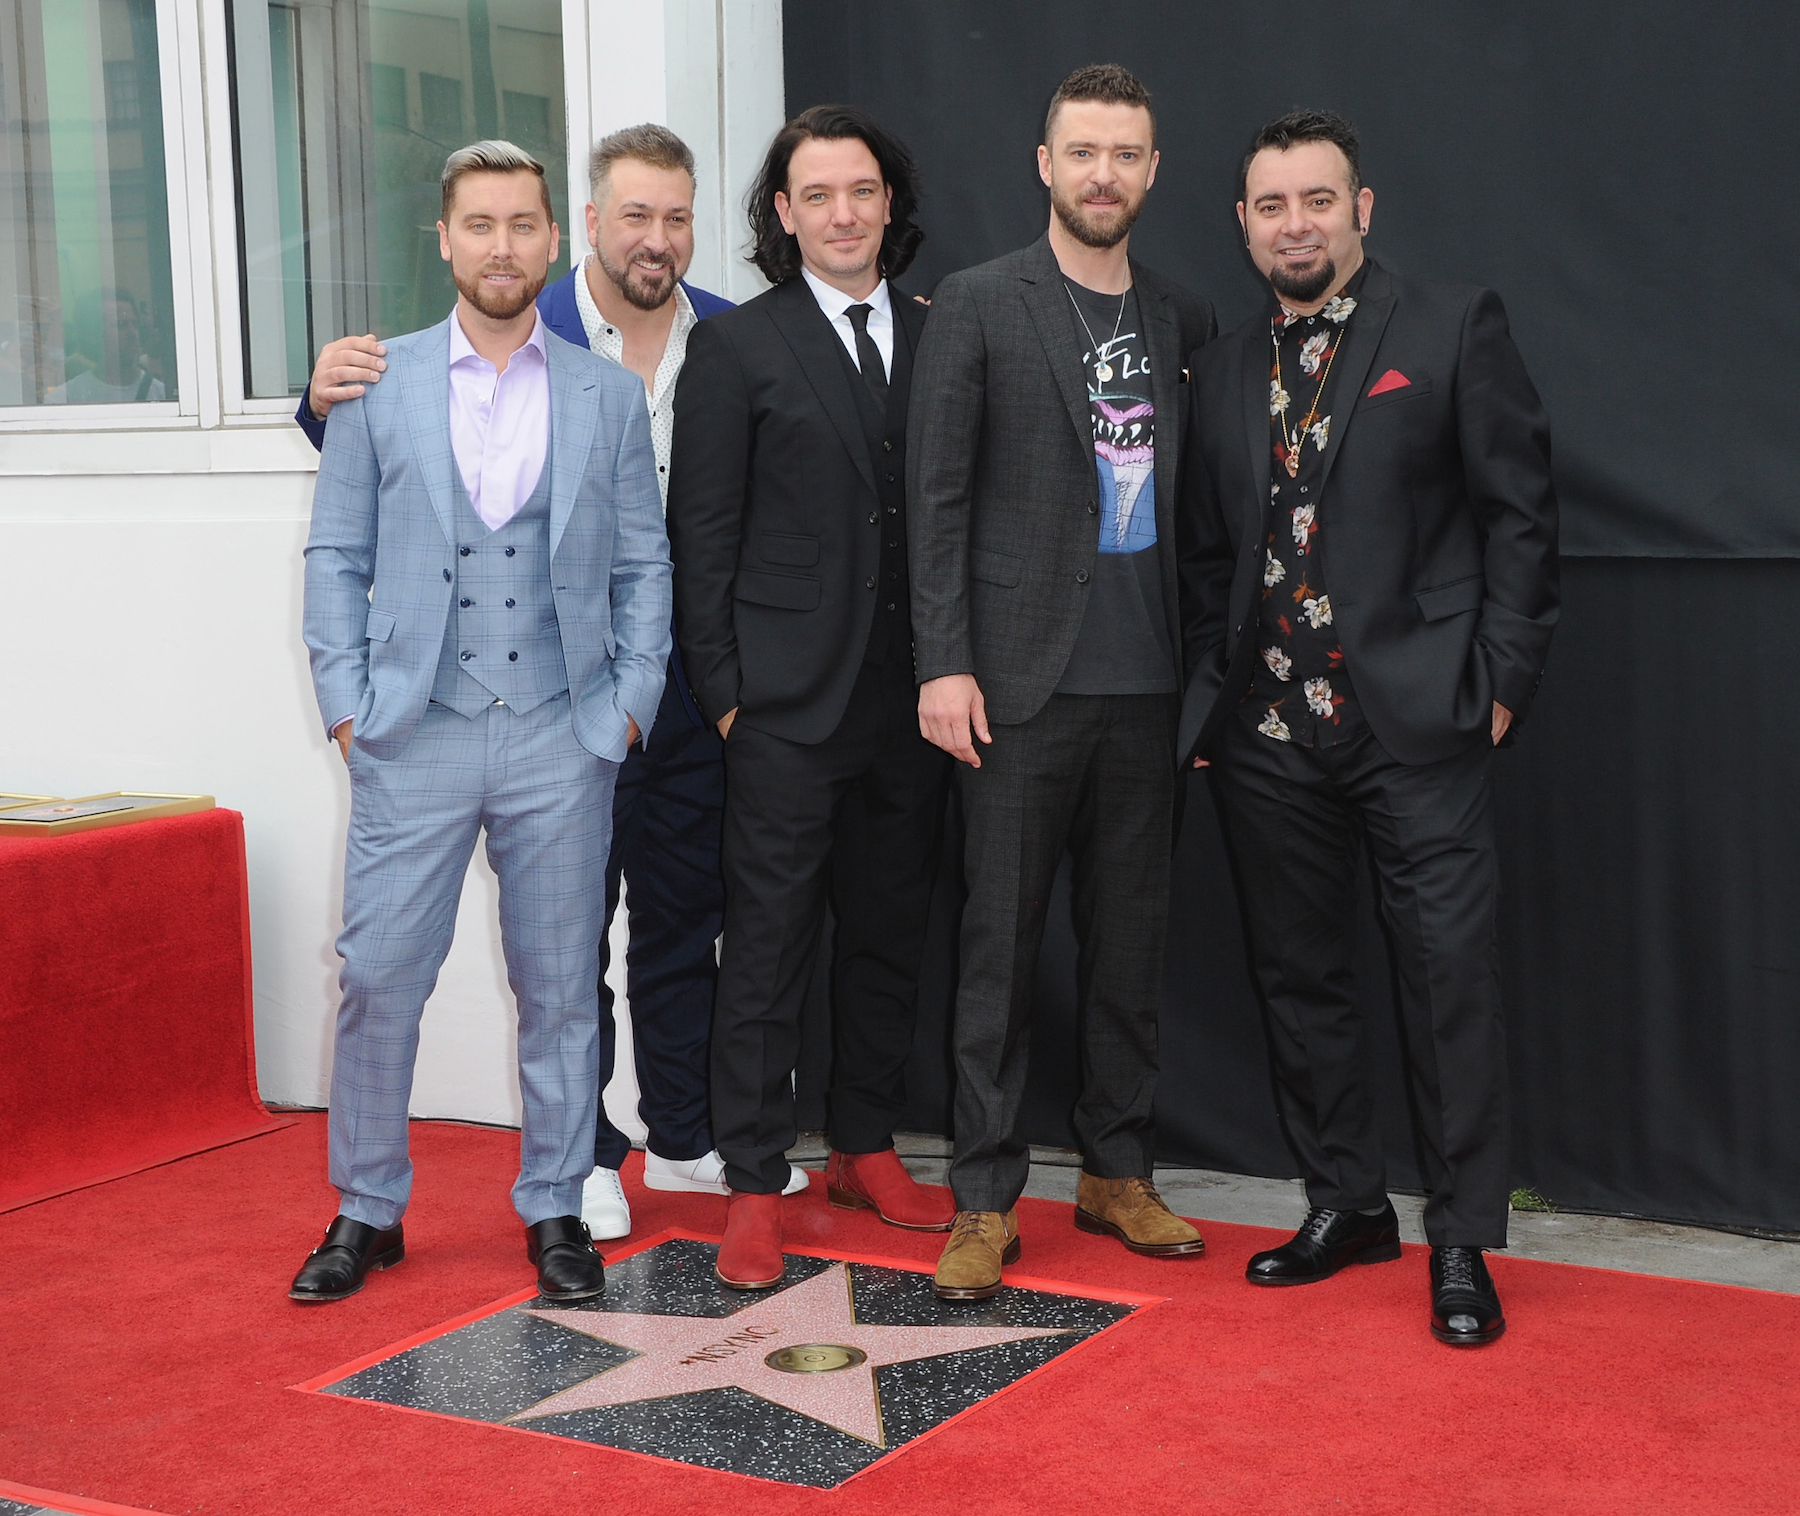 'NSync Reunites for Ariana Grande's 2019 Coachella Performance - NSYNC Honored With Star On The Hollywood Walk Of Fame held on April 30, 2018 in Hollywood, California.